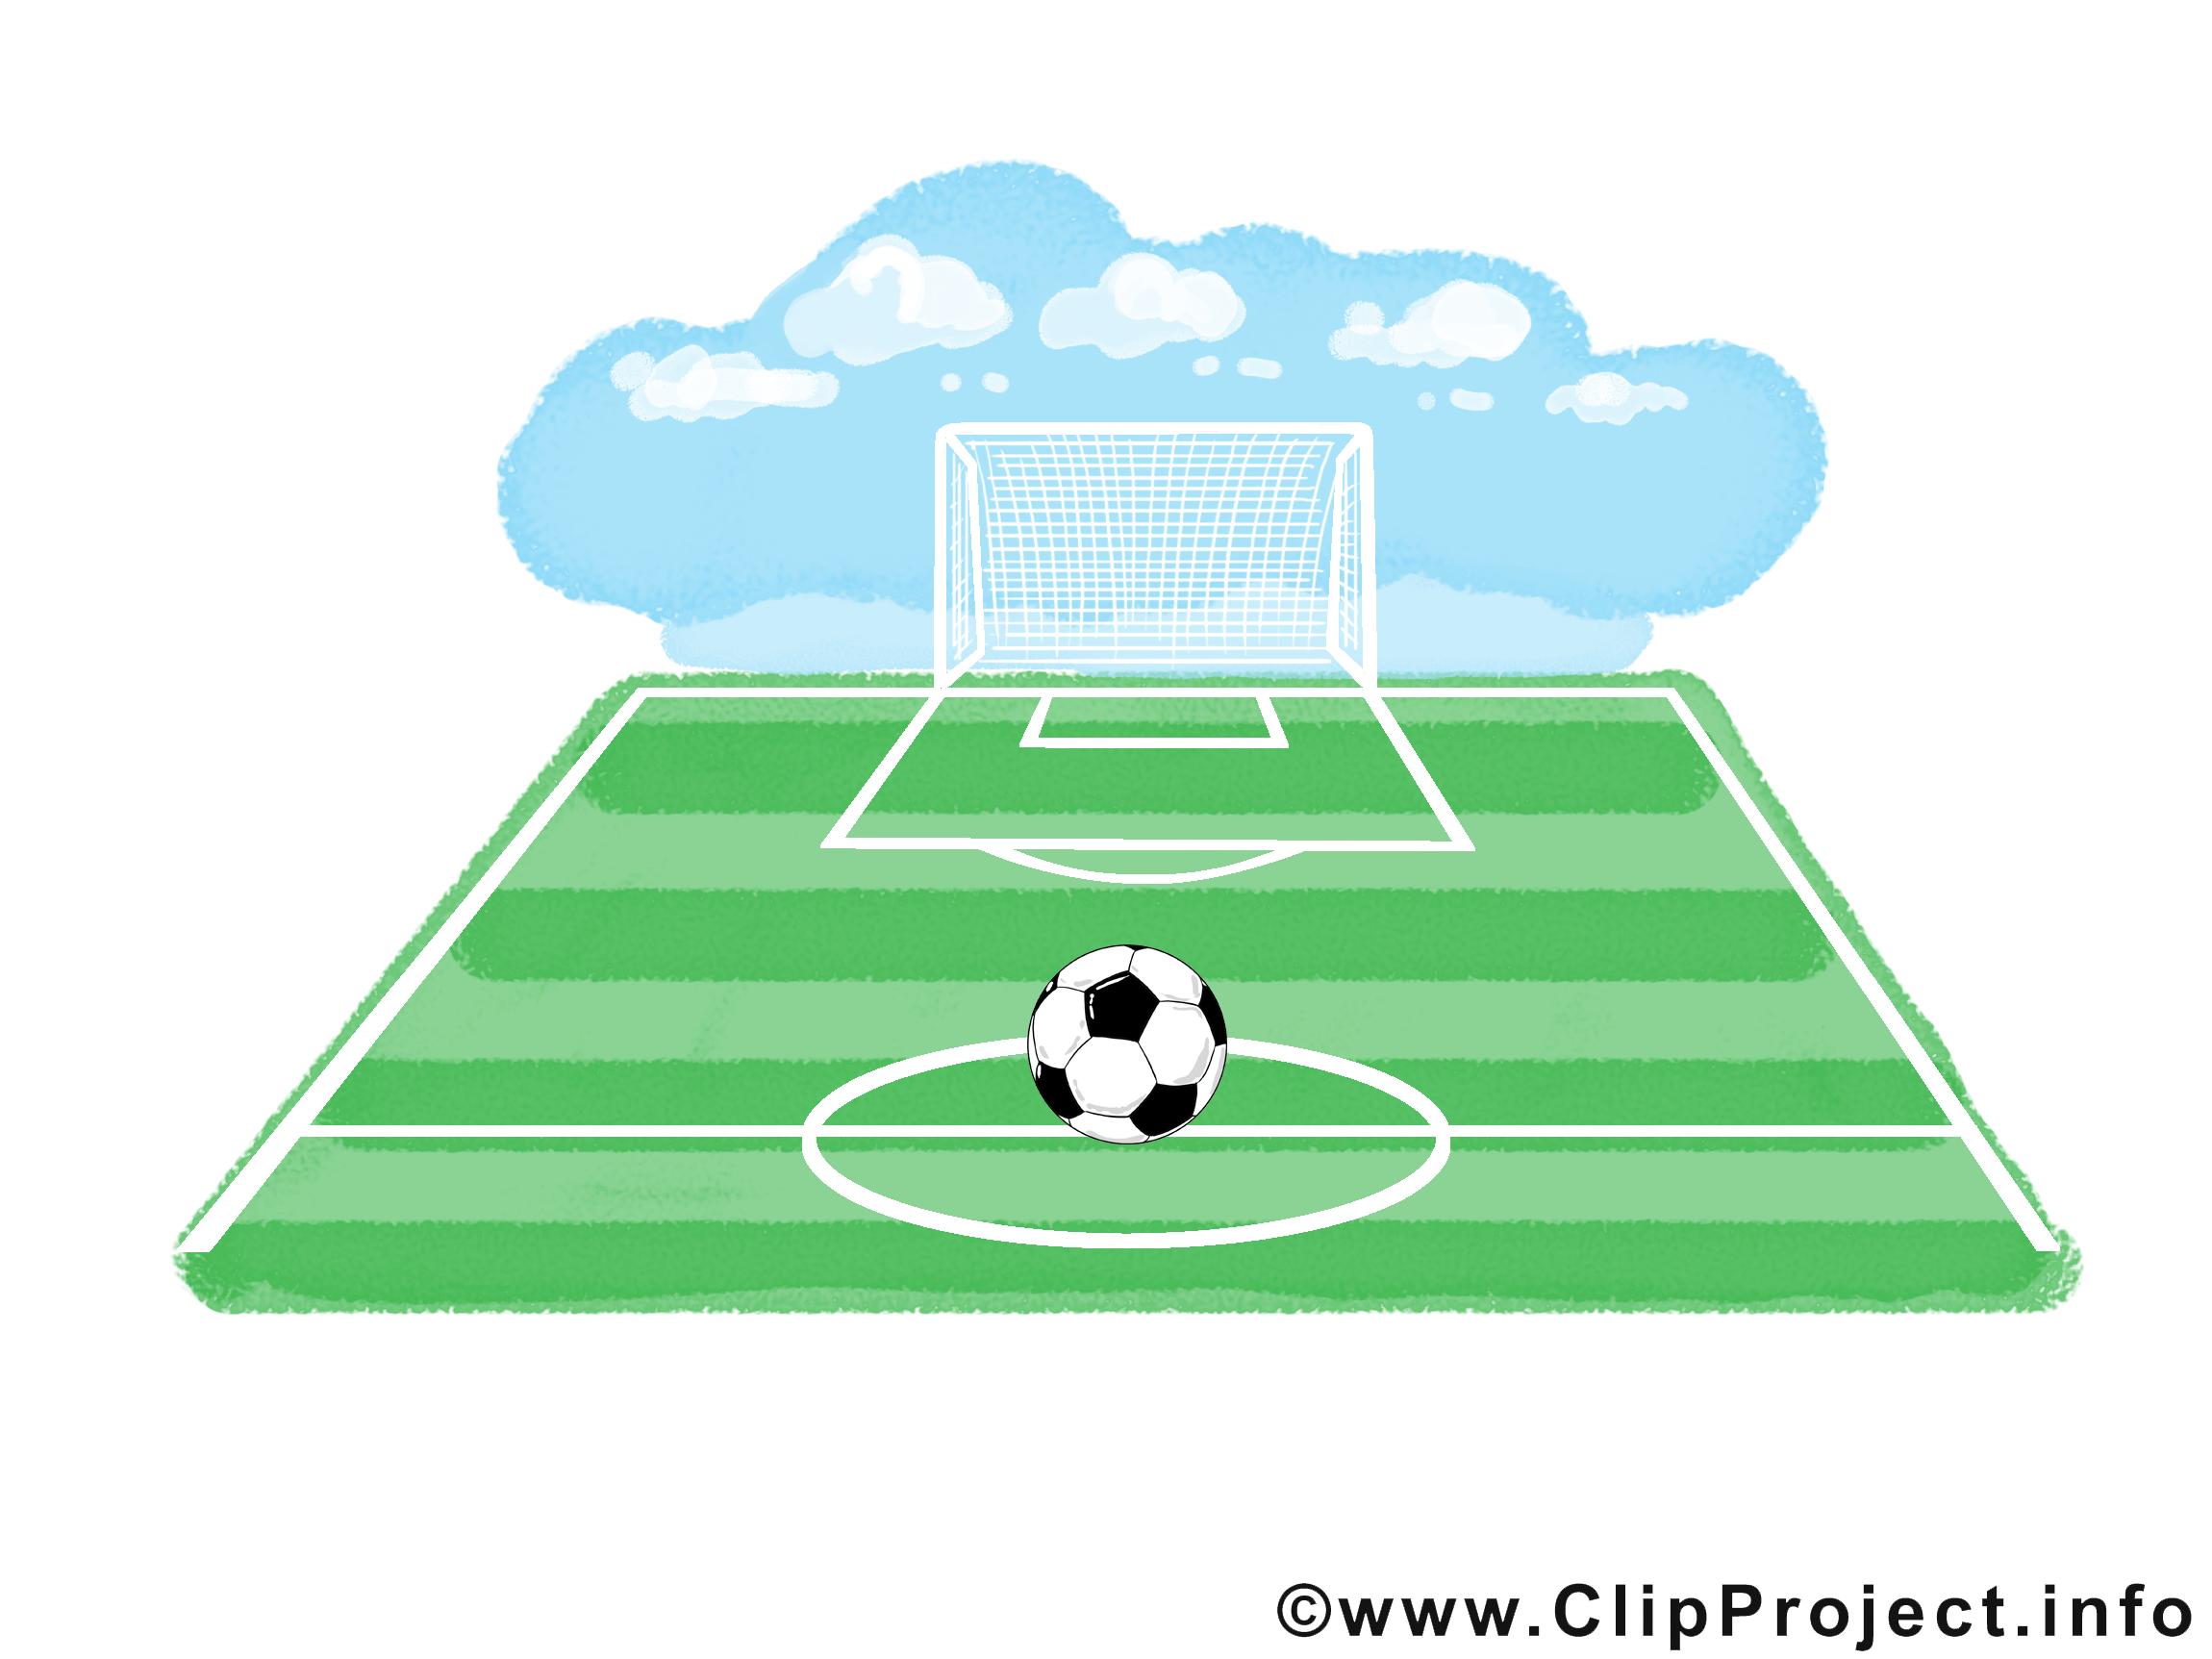 terrain clip art gratuit football dessin football dessin picture image graphic clip art. Black Bedroom Furniture Sets. Home Design Ideas